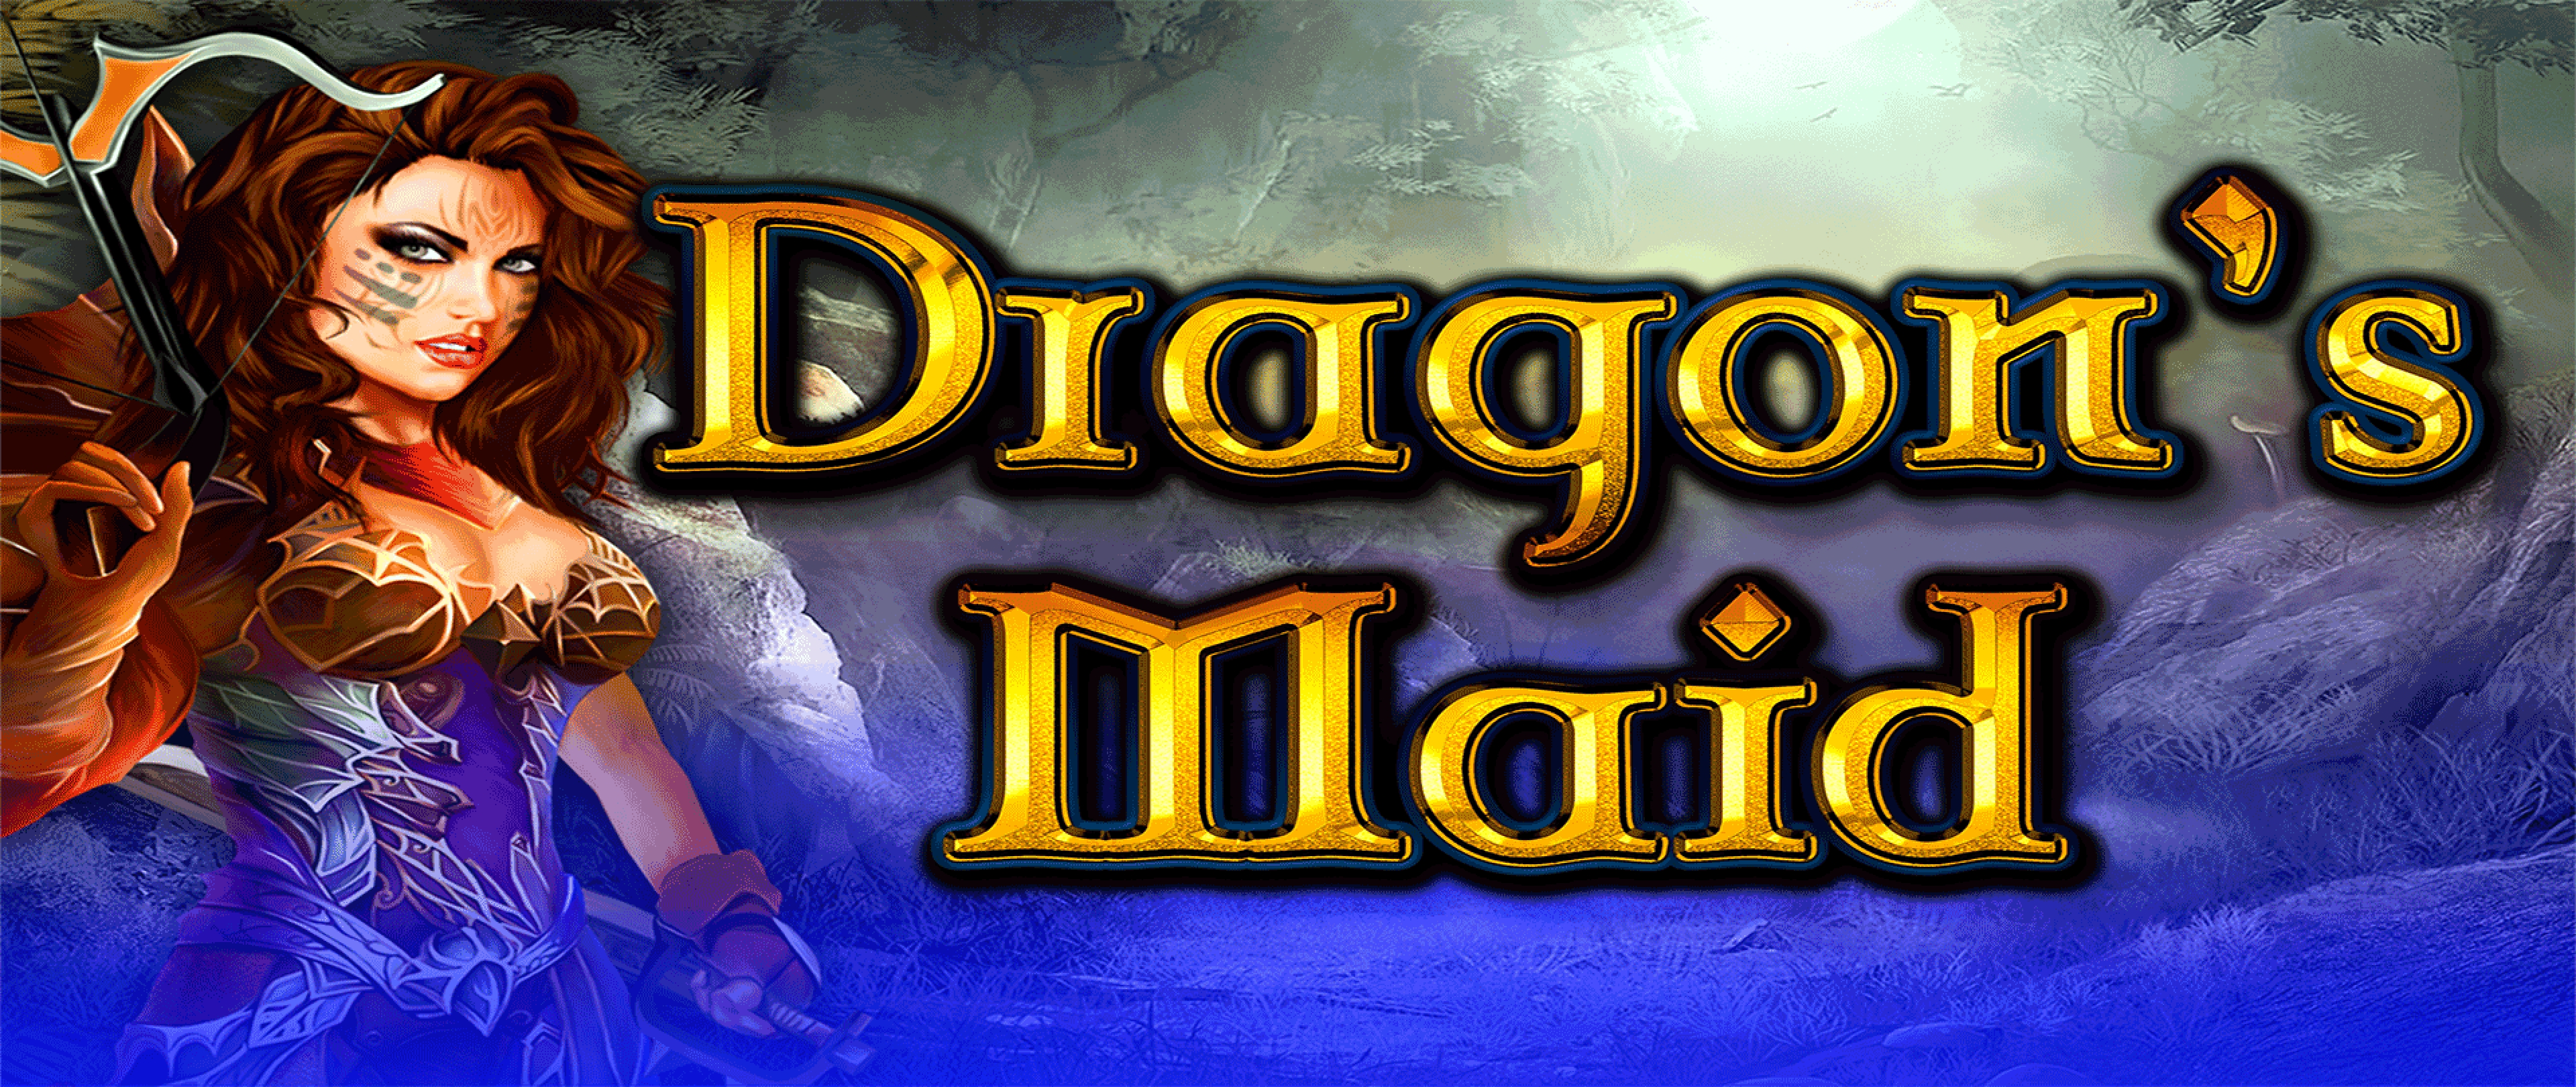 The Dragon's Maid Online Slot Demo Game by Merkur Gaming